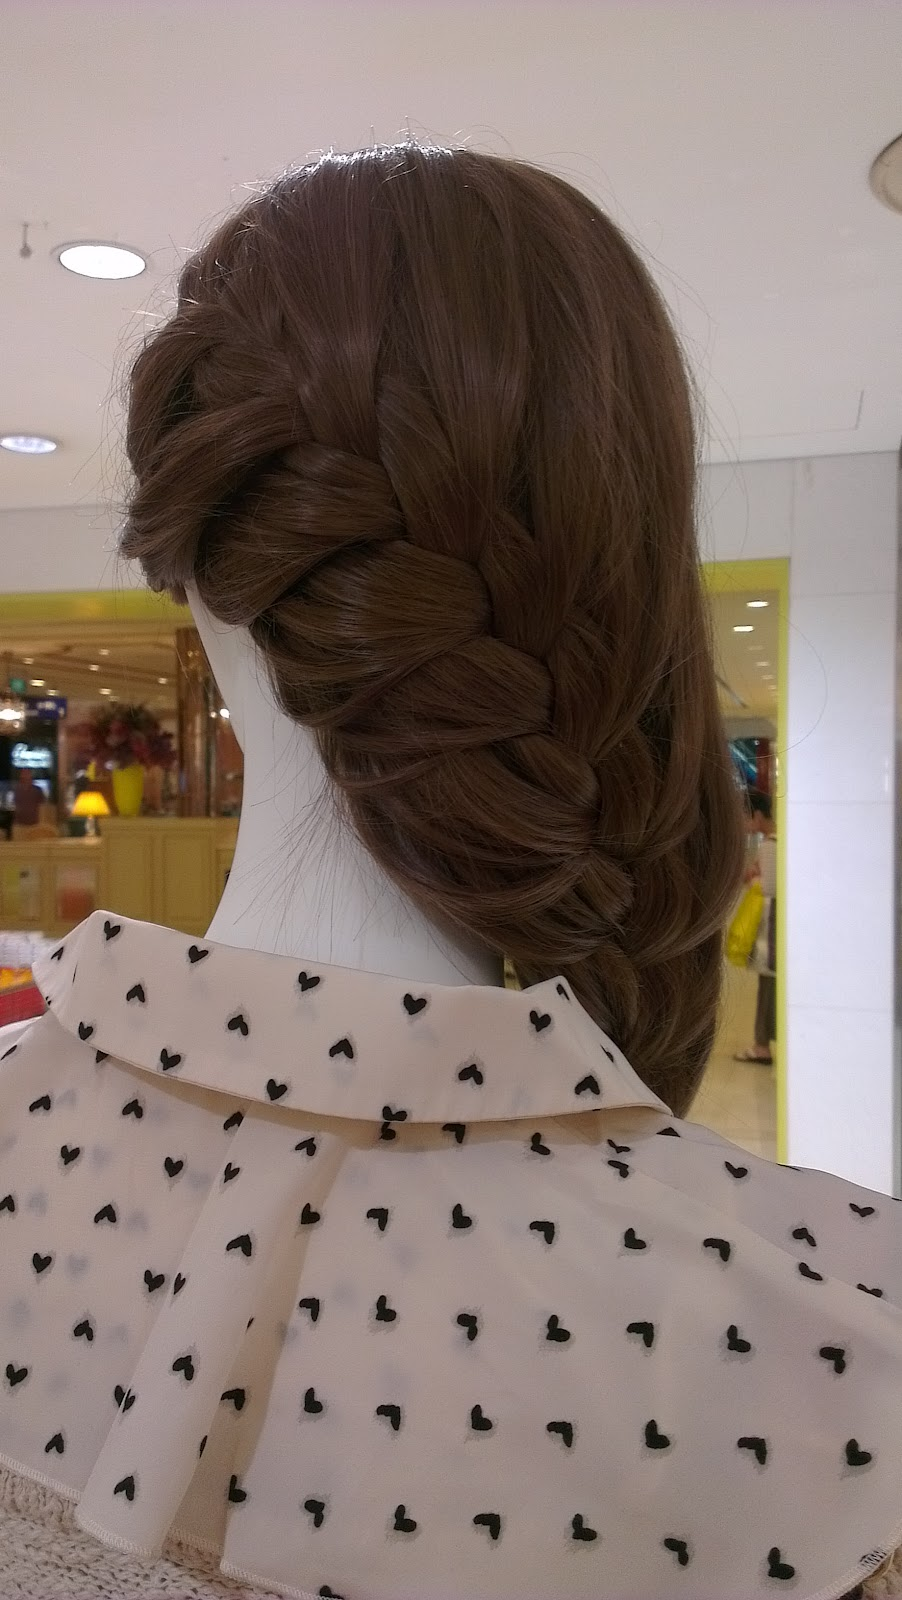 Dip Drops Singapore French Braid Hairstyle Ideas